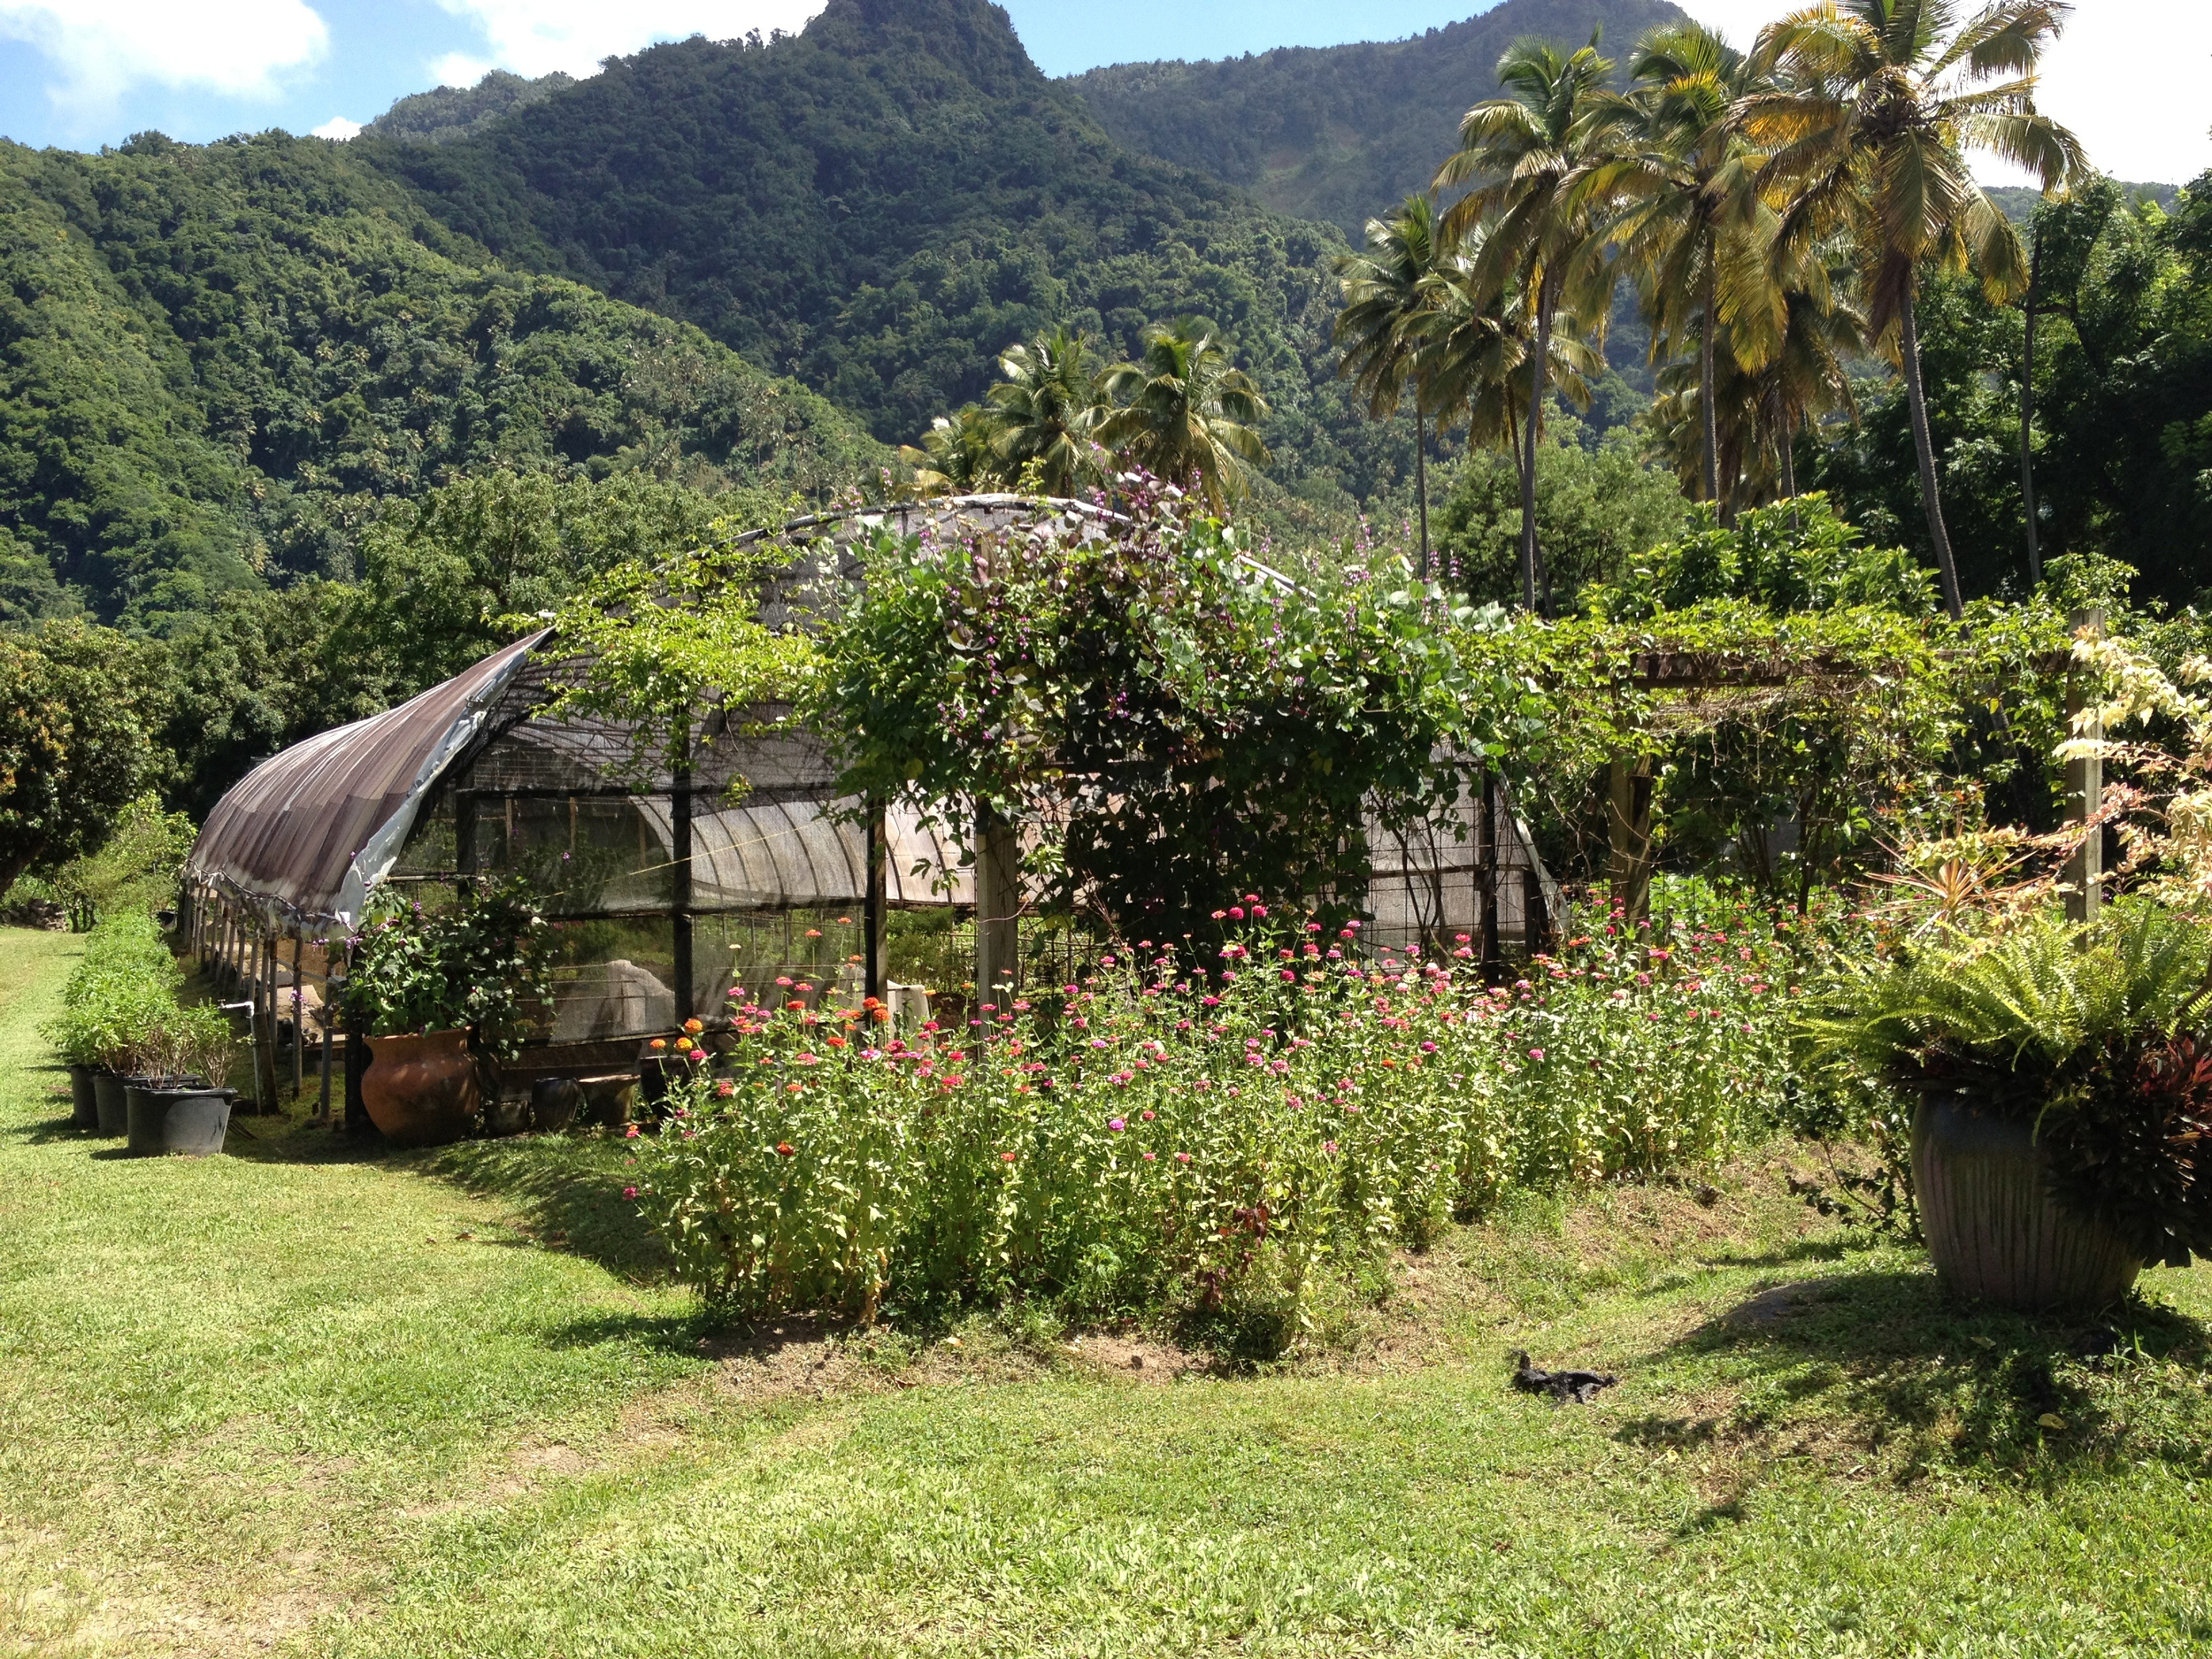 Jade Mountain's sister property, Emerald Estate, is a working sustainable farm which provides much of the produce for the resort.